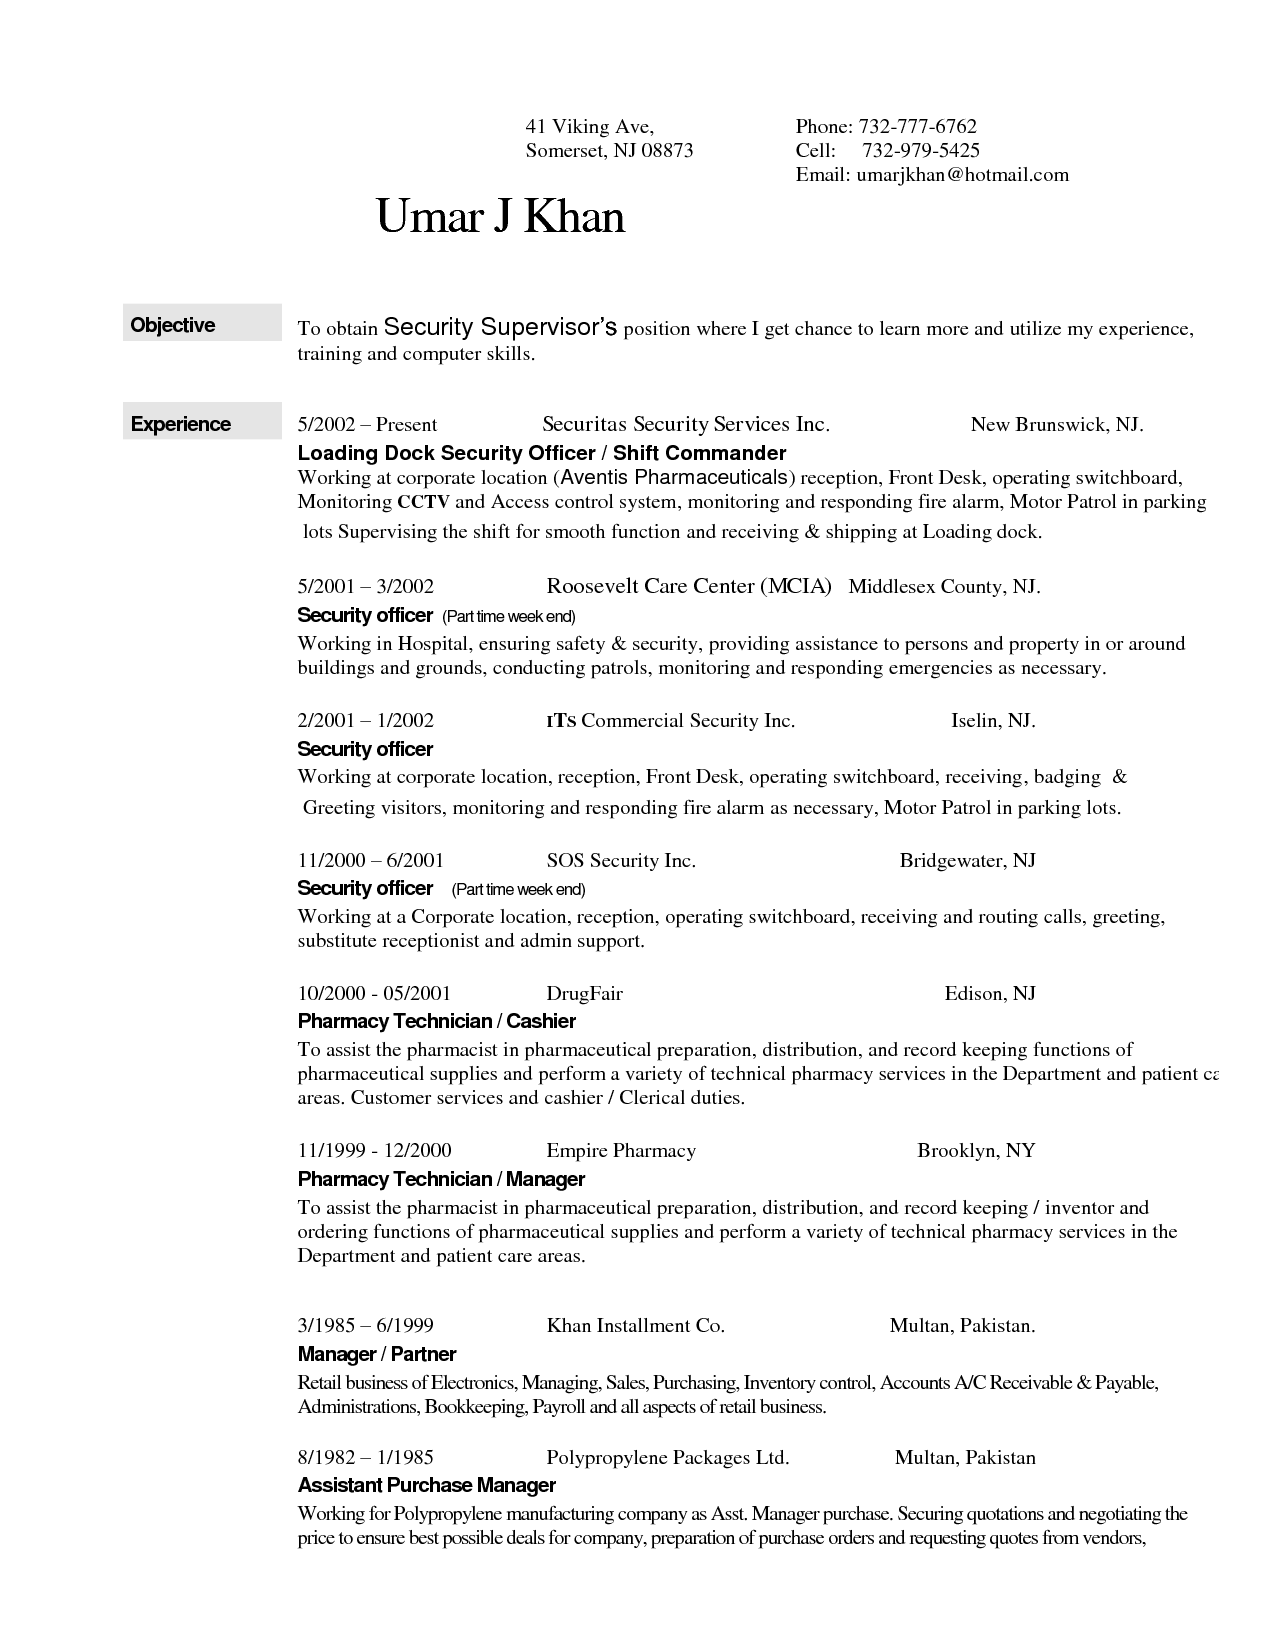 Pin By Latestresume On Latest Resume Pinterest Sample Resume